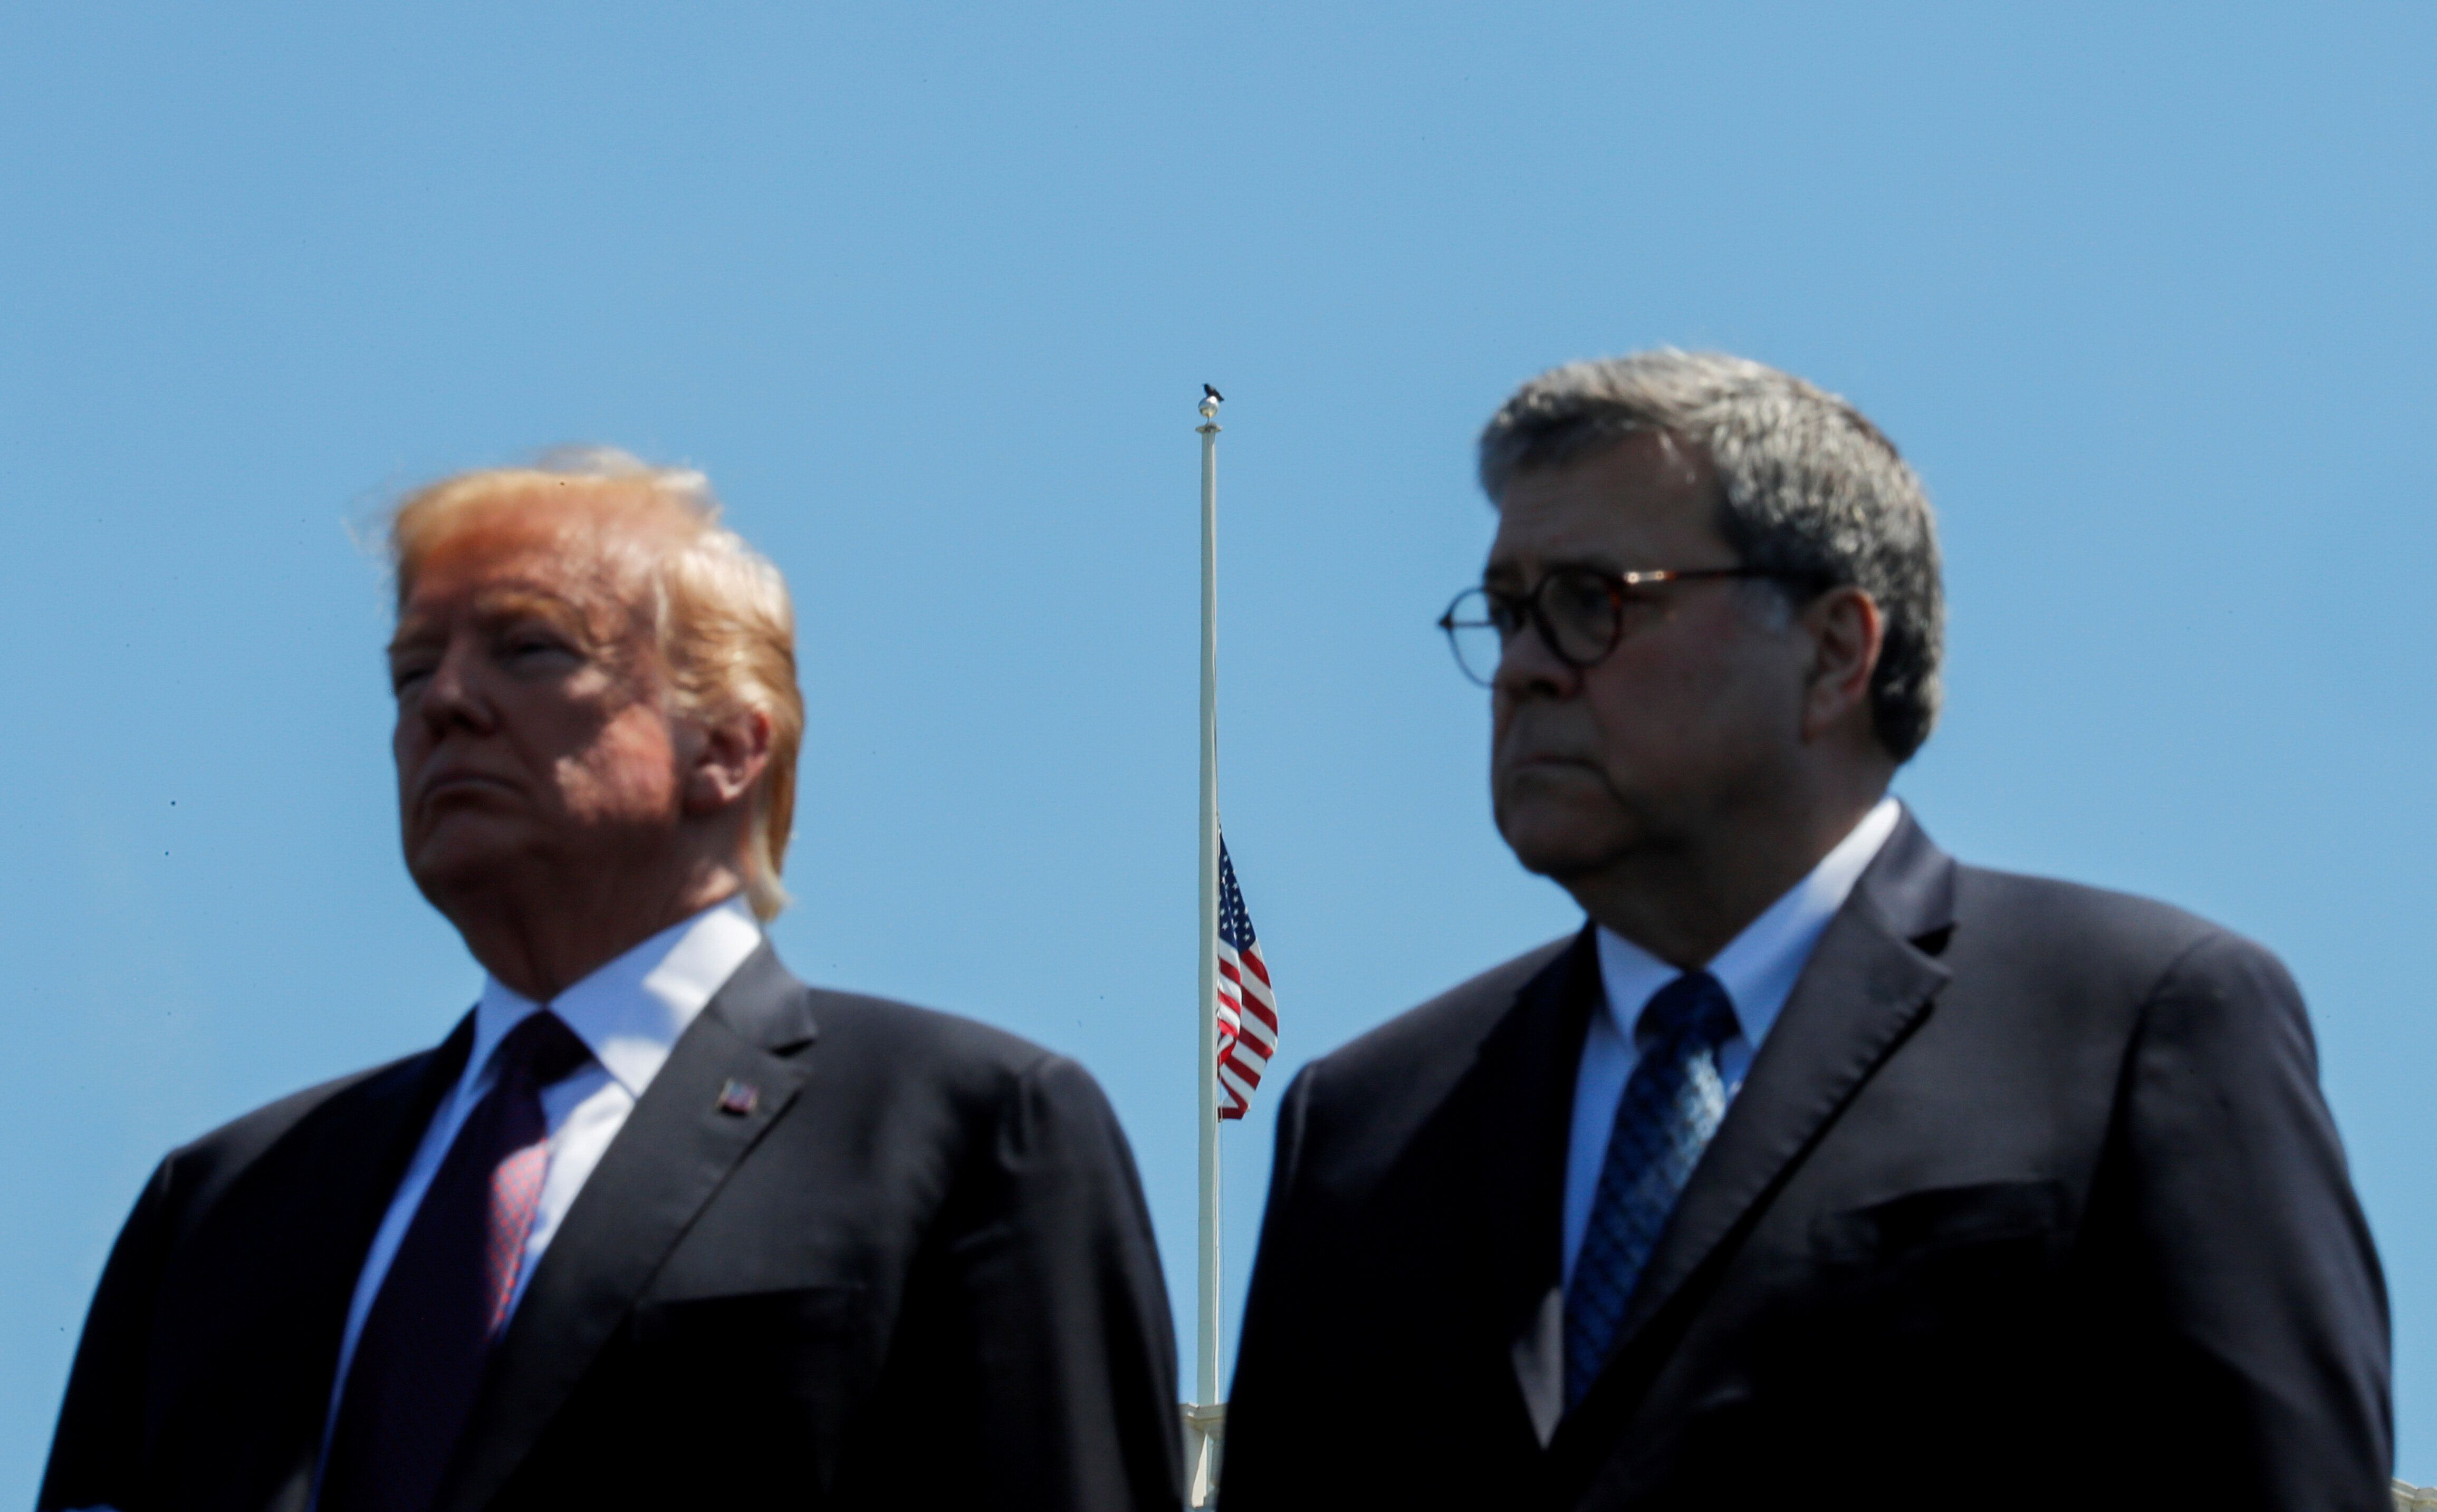 President Donald Trump and Attorney General William Barr attended the 38th Annual National Peace Officers Memorial Service in